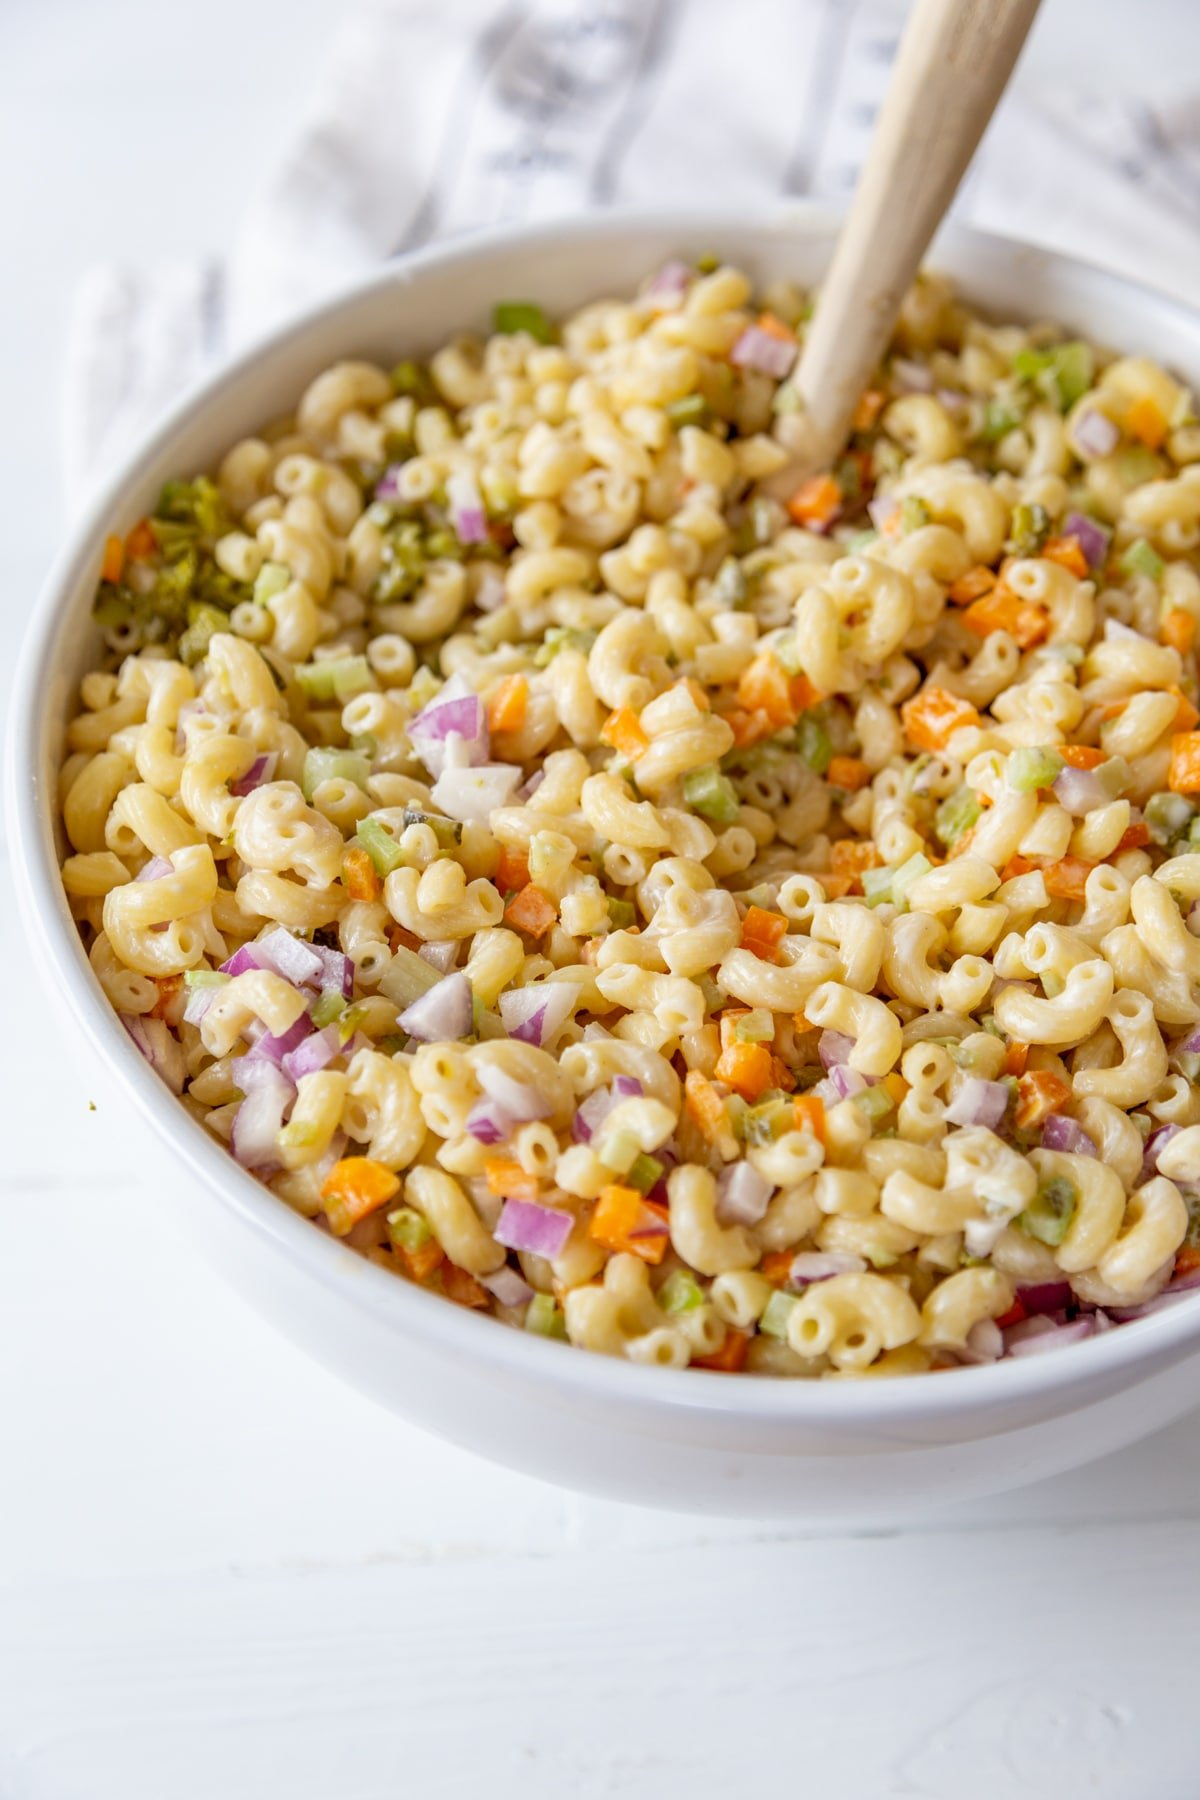 A large white bowl with a wooden spoon stirring macaroni salad.